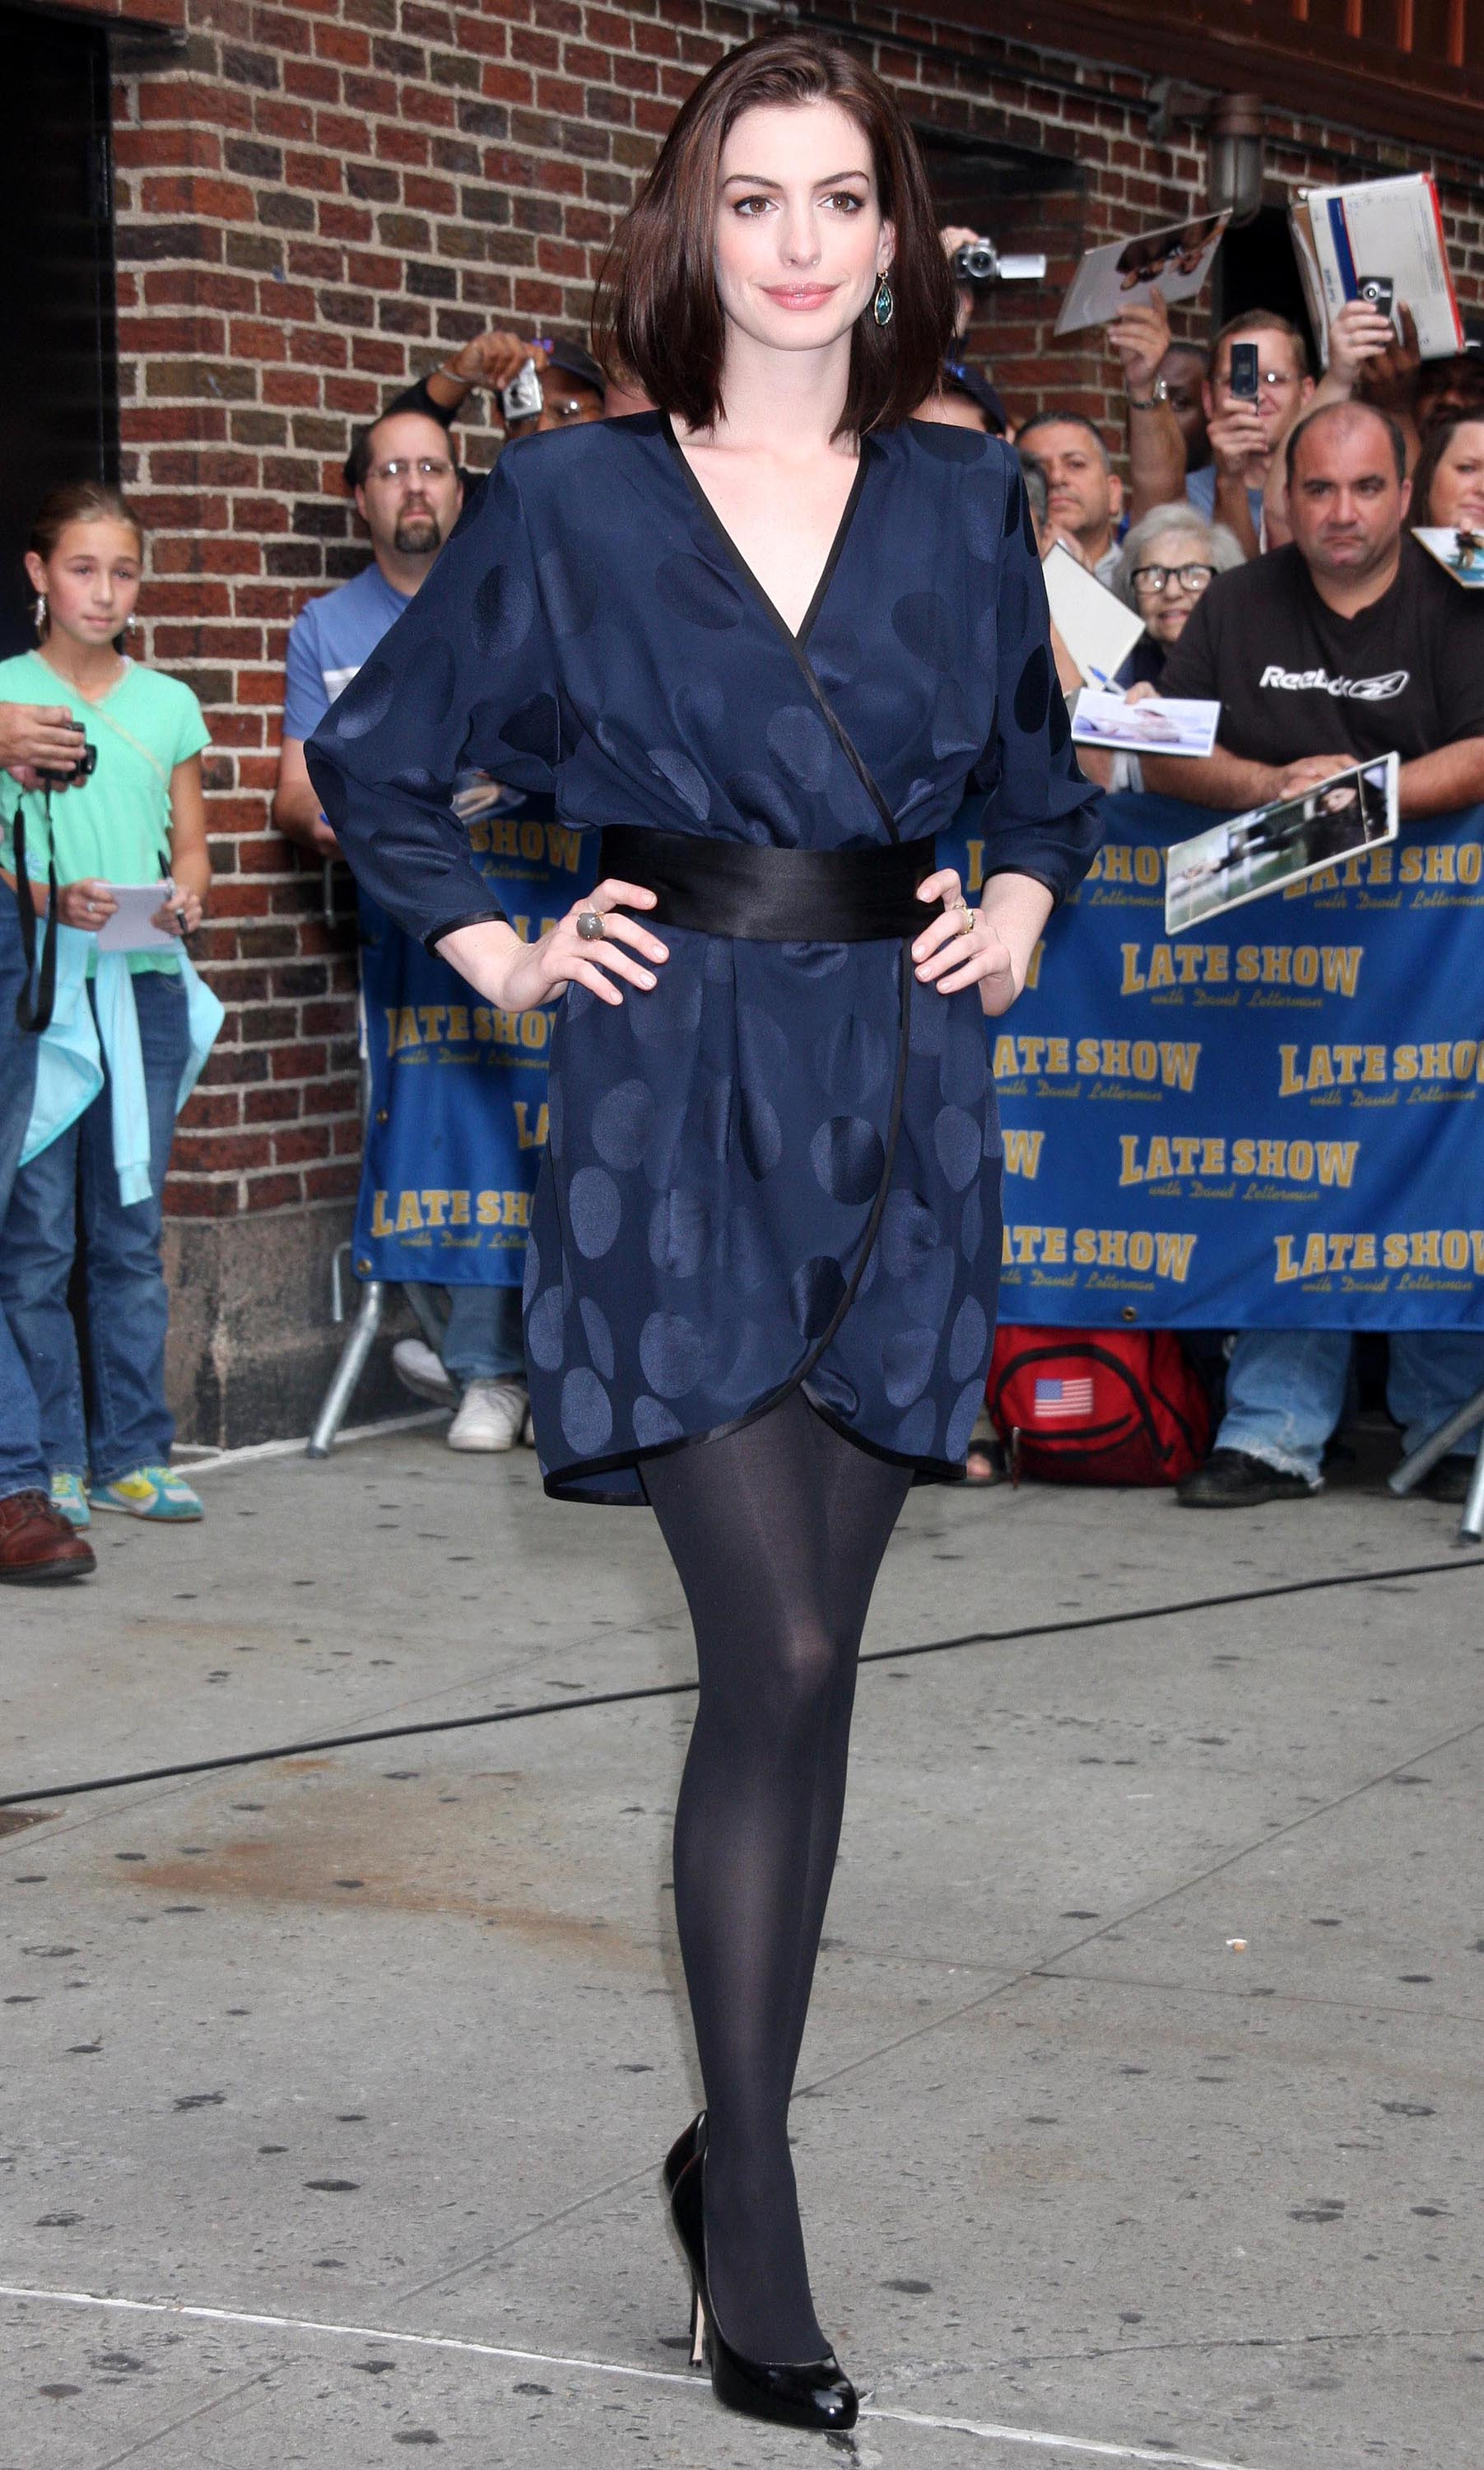 47601_Anne_Hathaway_2008-09-30_-_visits_the_Late_Show_with_David_Letterman_3211_122_686lo.jpg